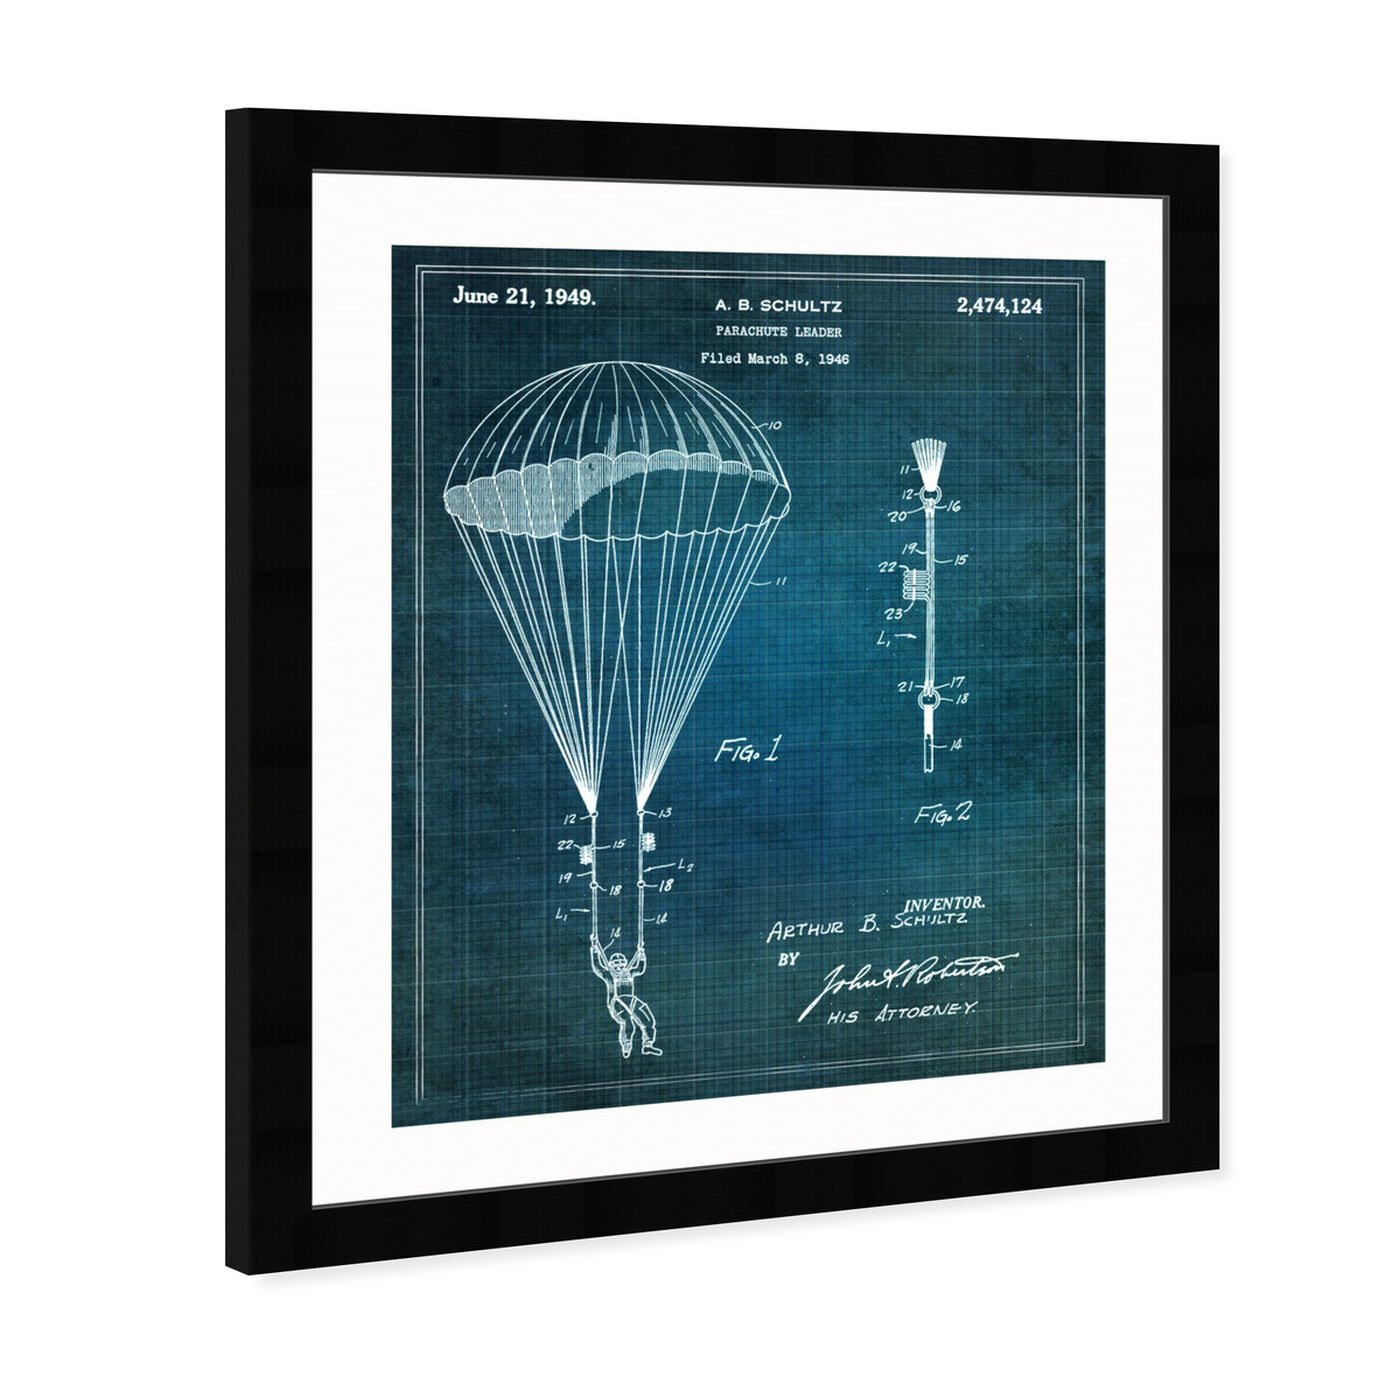 Angled view of Parachute Leader 1949 featuring transportation and air transportation art.